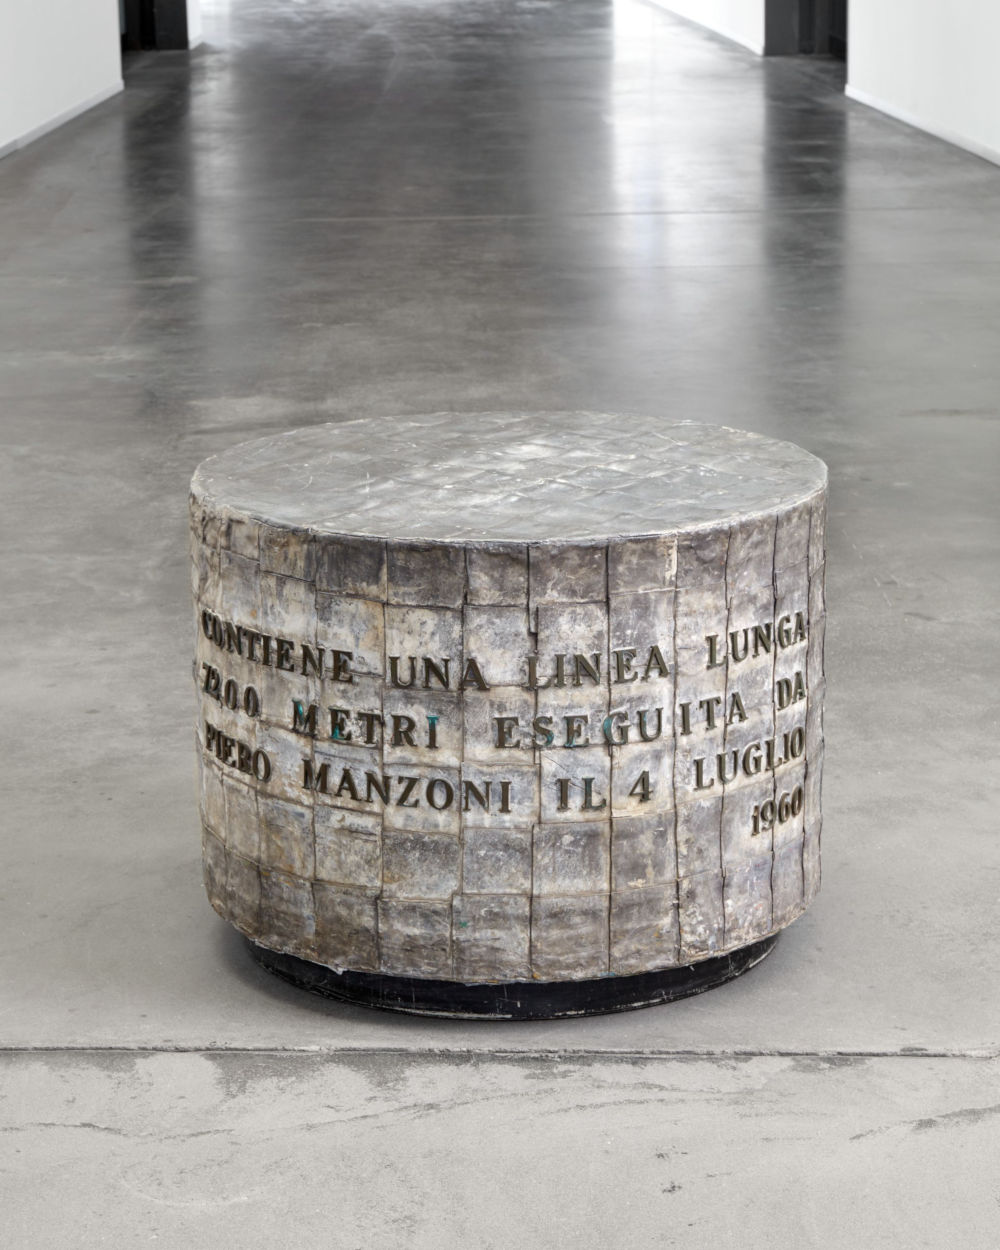 Piero Manzoni, Linea lunga 7200 metri (Long line 7200 meter), 4 July 1960. Ink on paper, zinc cylinder covered with sheets of lead 66 x 96 cm / 26 x 37 3/4 in 96 cm / 37 3/4 in HEART Herning Museum of Contemporary Art. Photo: Søren Krogh © Fondazione Piero Manzoni, Milano. Courtesy of the Foundation and Hauser & Wirth